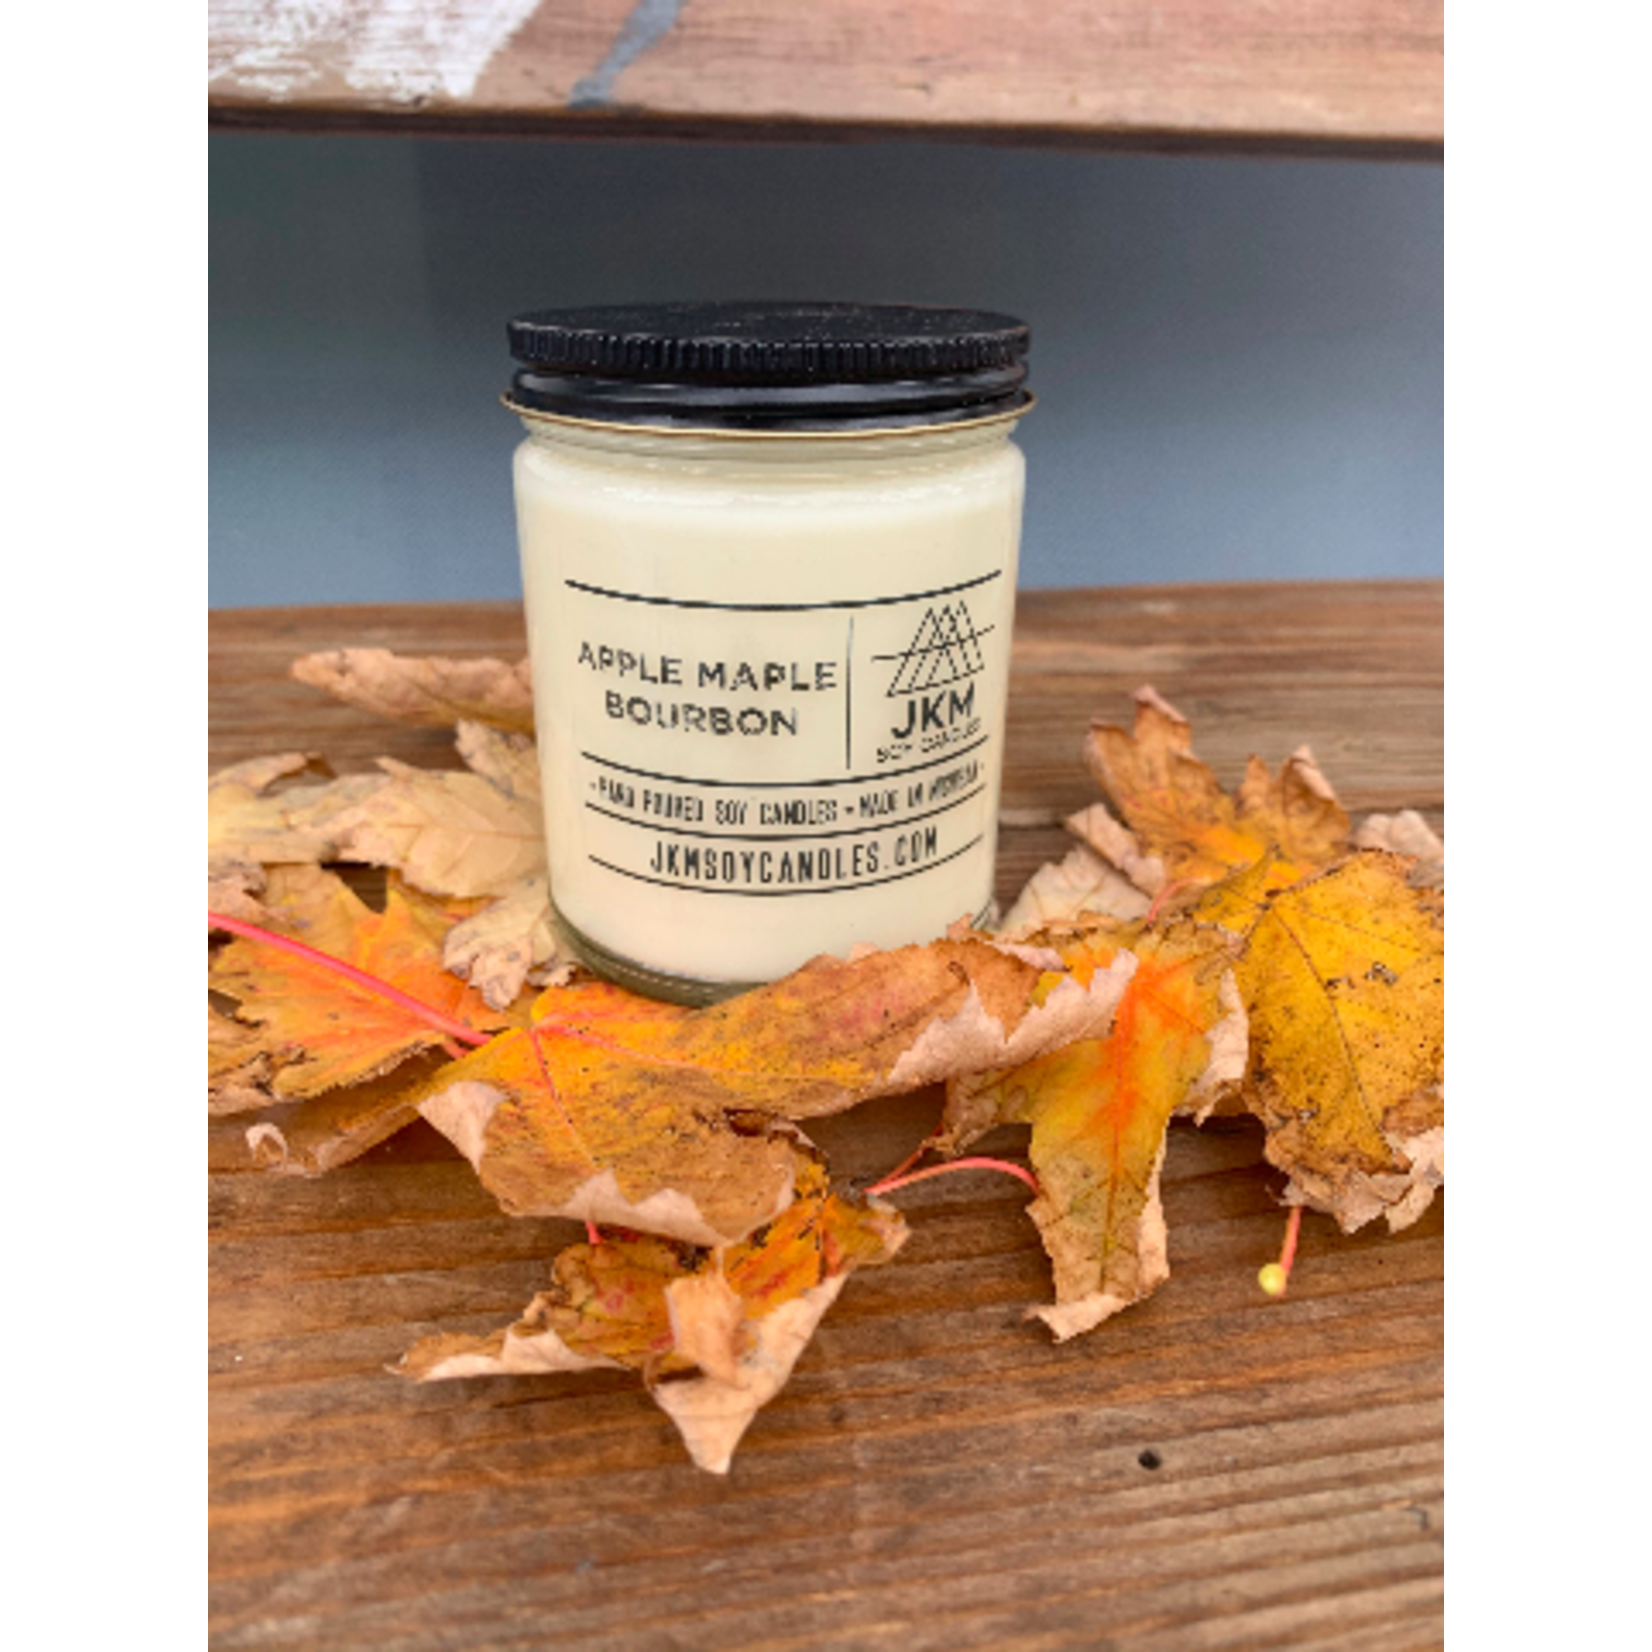 JKM Soy Candles FC: Fall Collection Candle